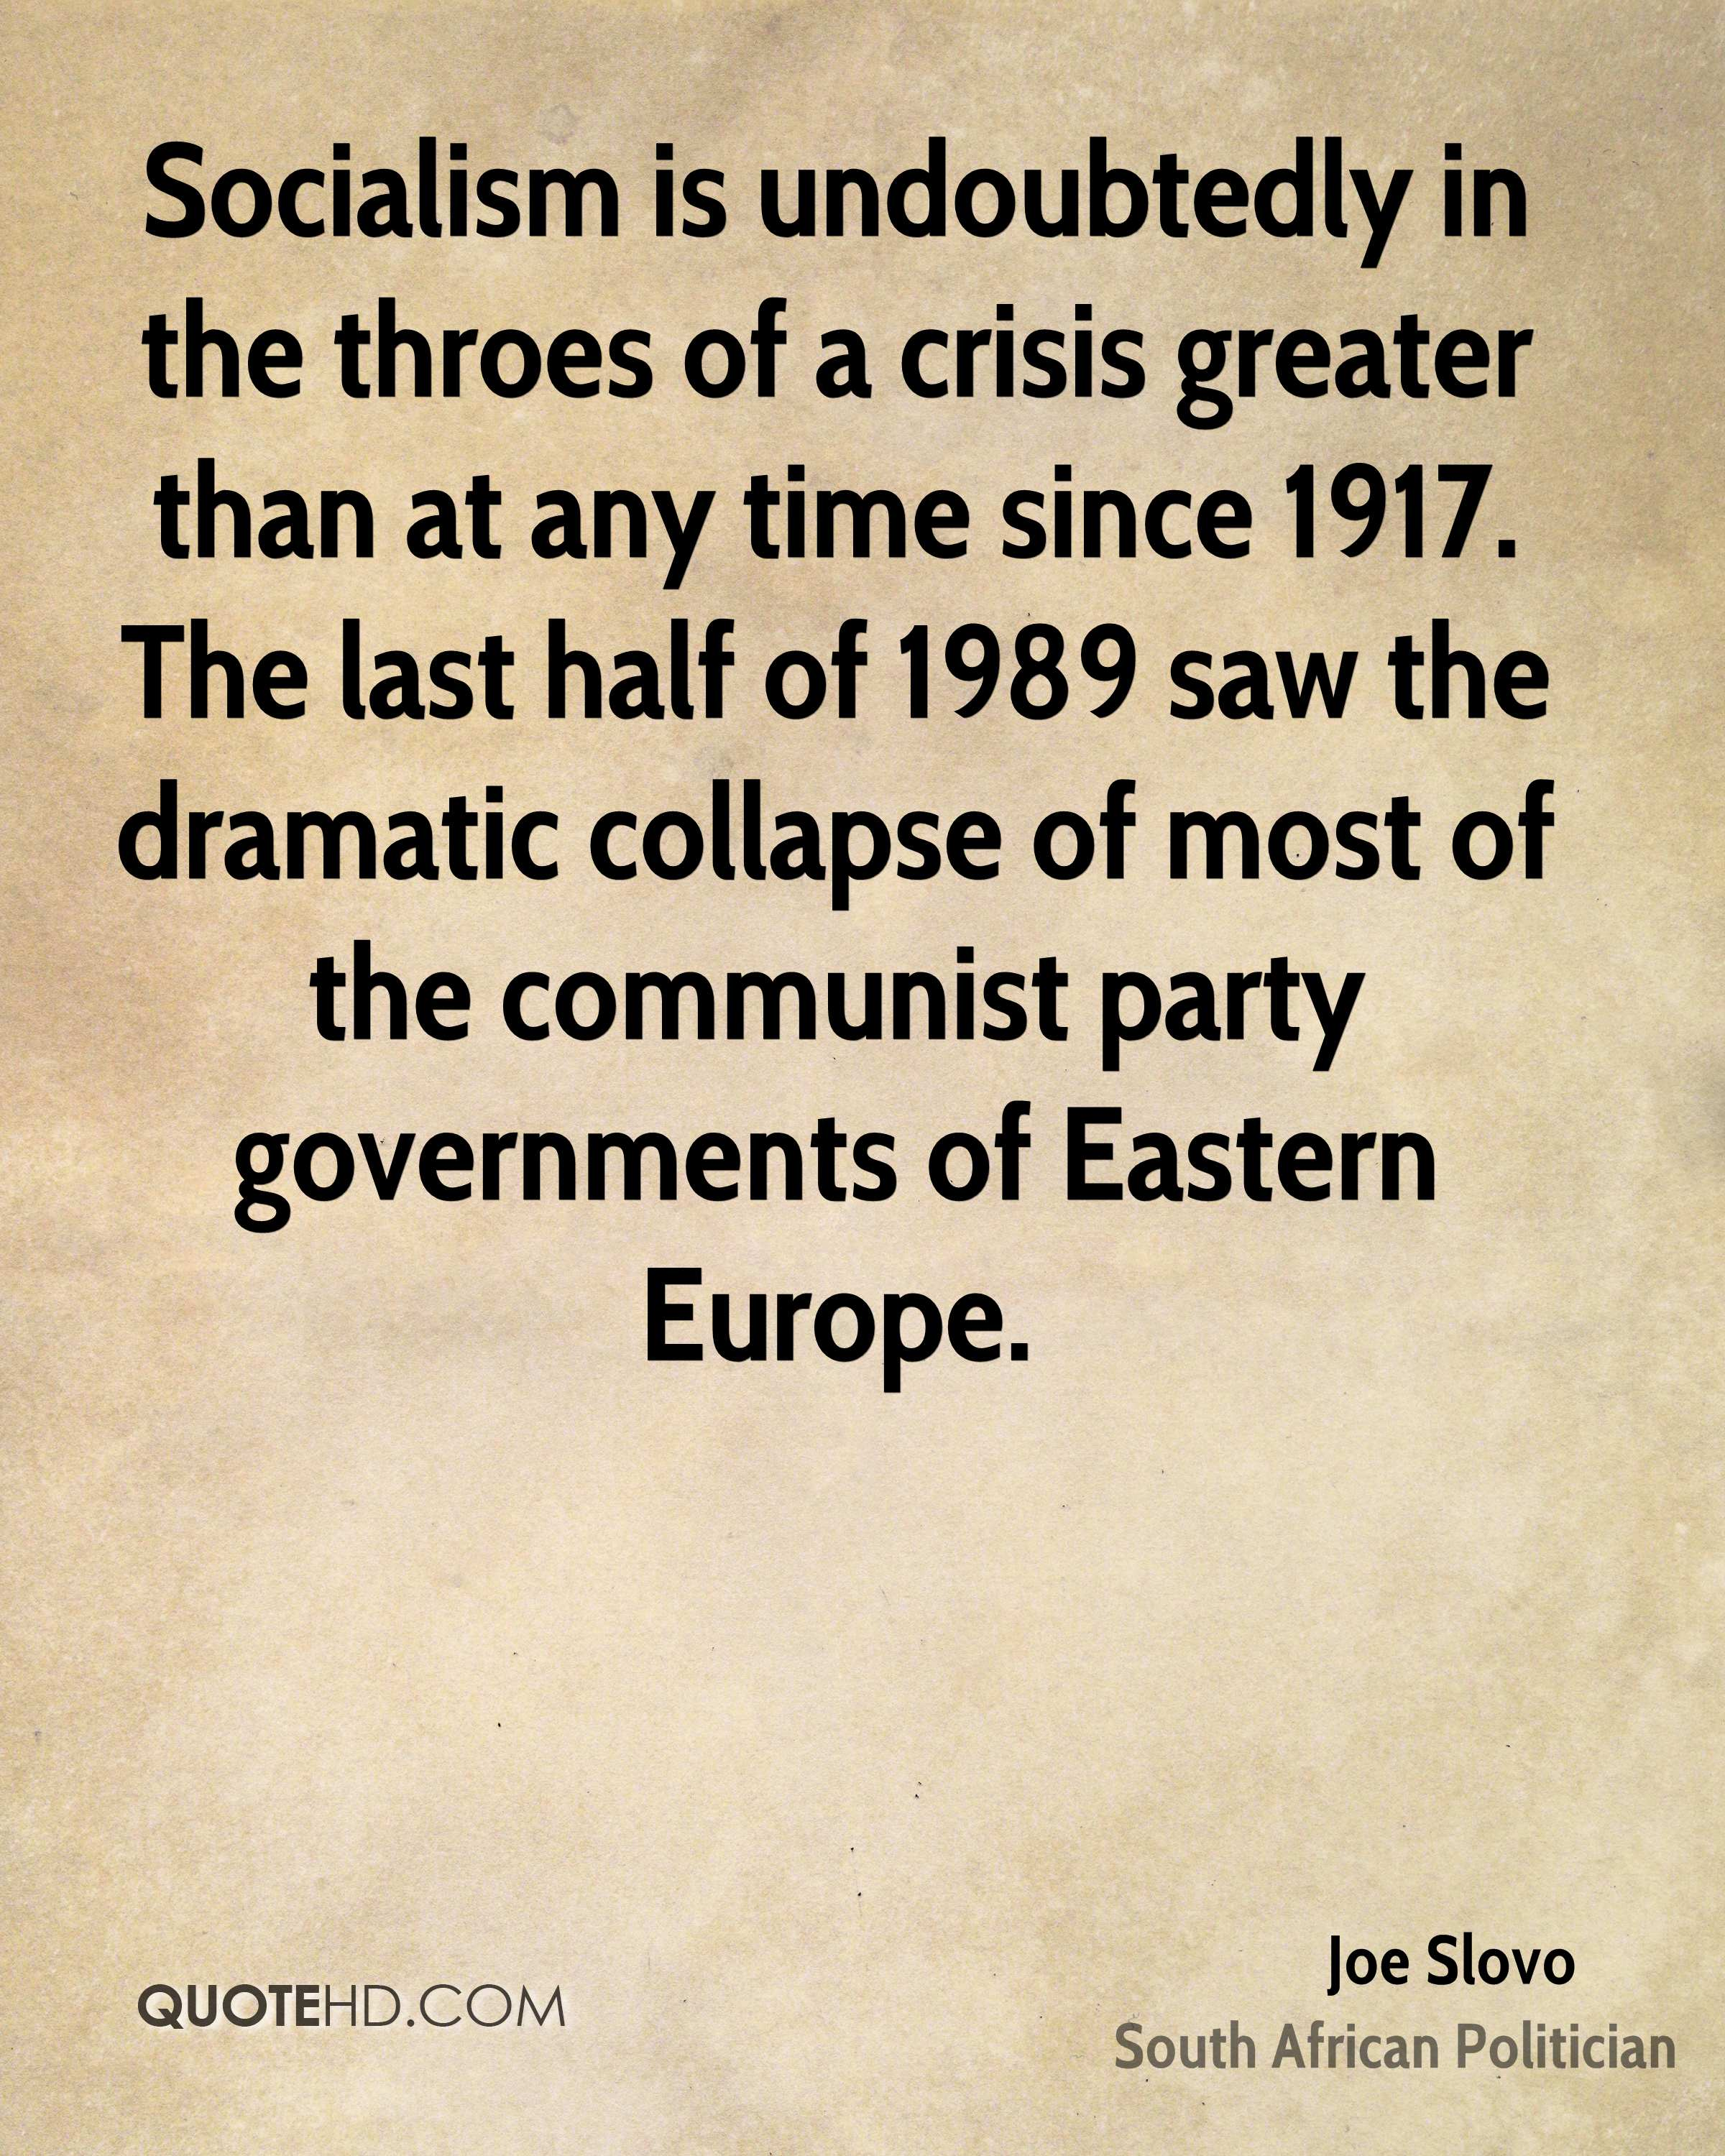 Socialism is undoubtedly in the throes of a crisis greater than at any time since 1917. The last half of 1989 saw the dramatic collapse of most of the communist party governments of Eastern Europe.